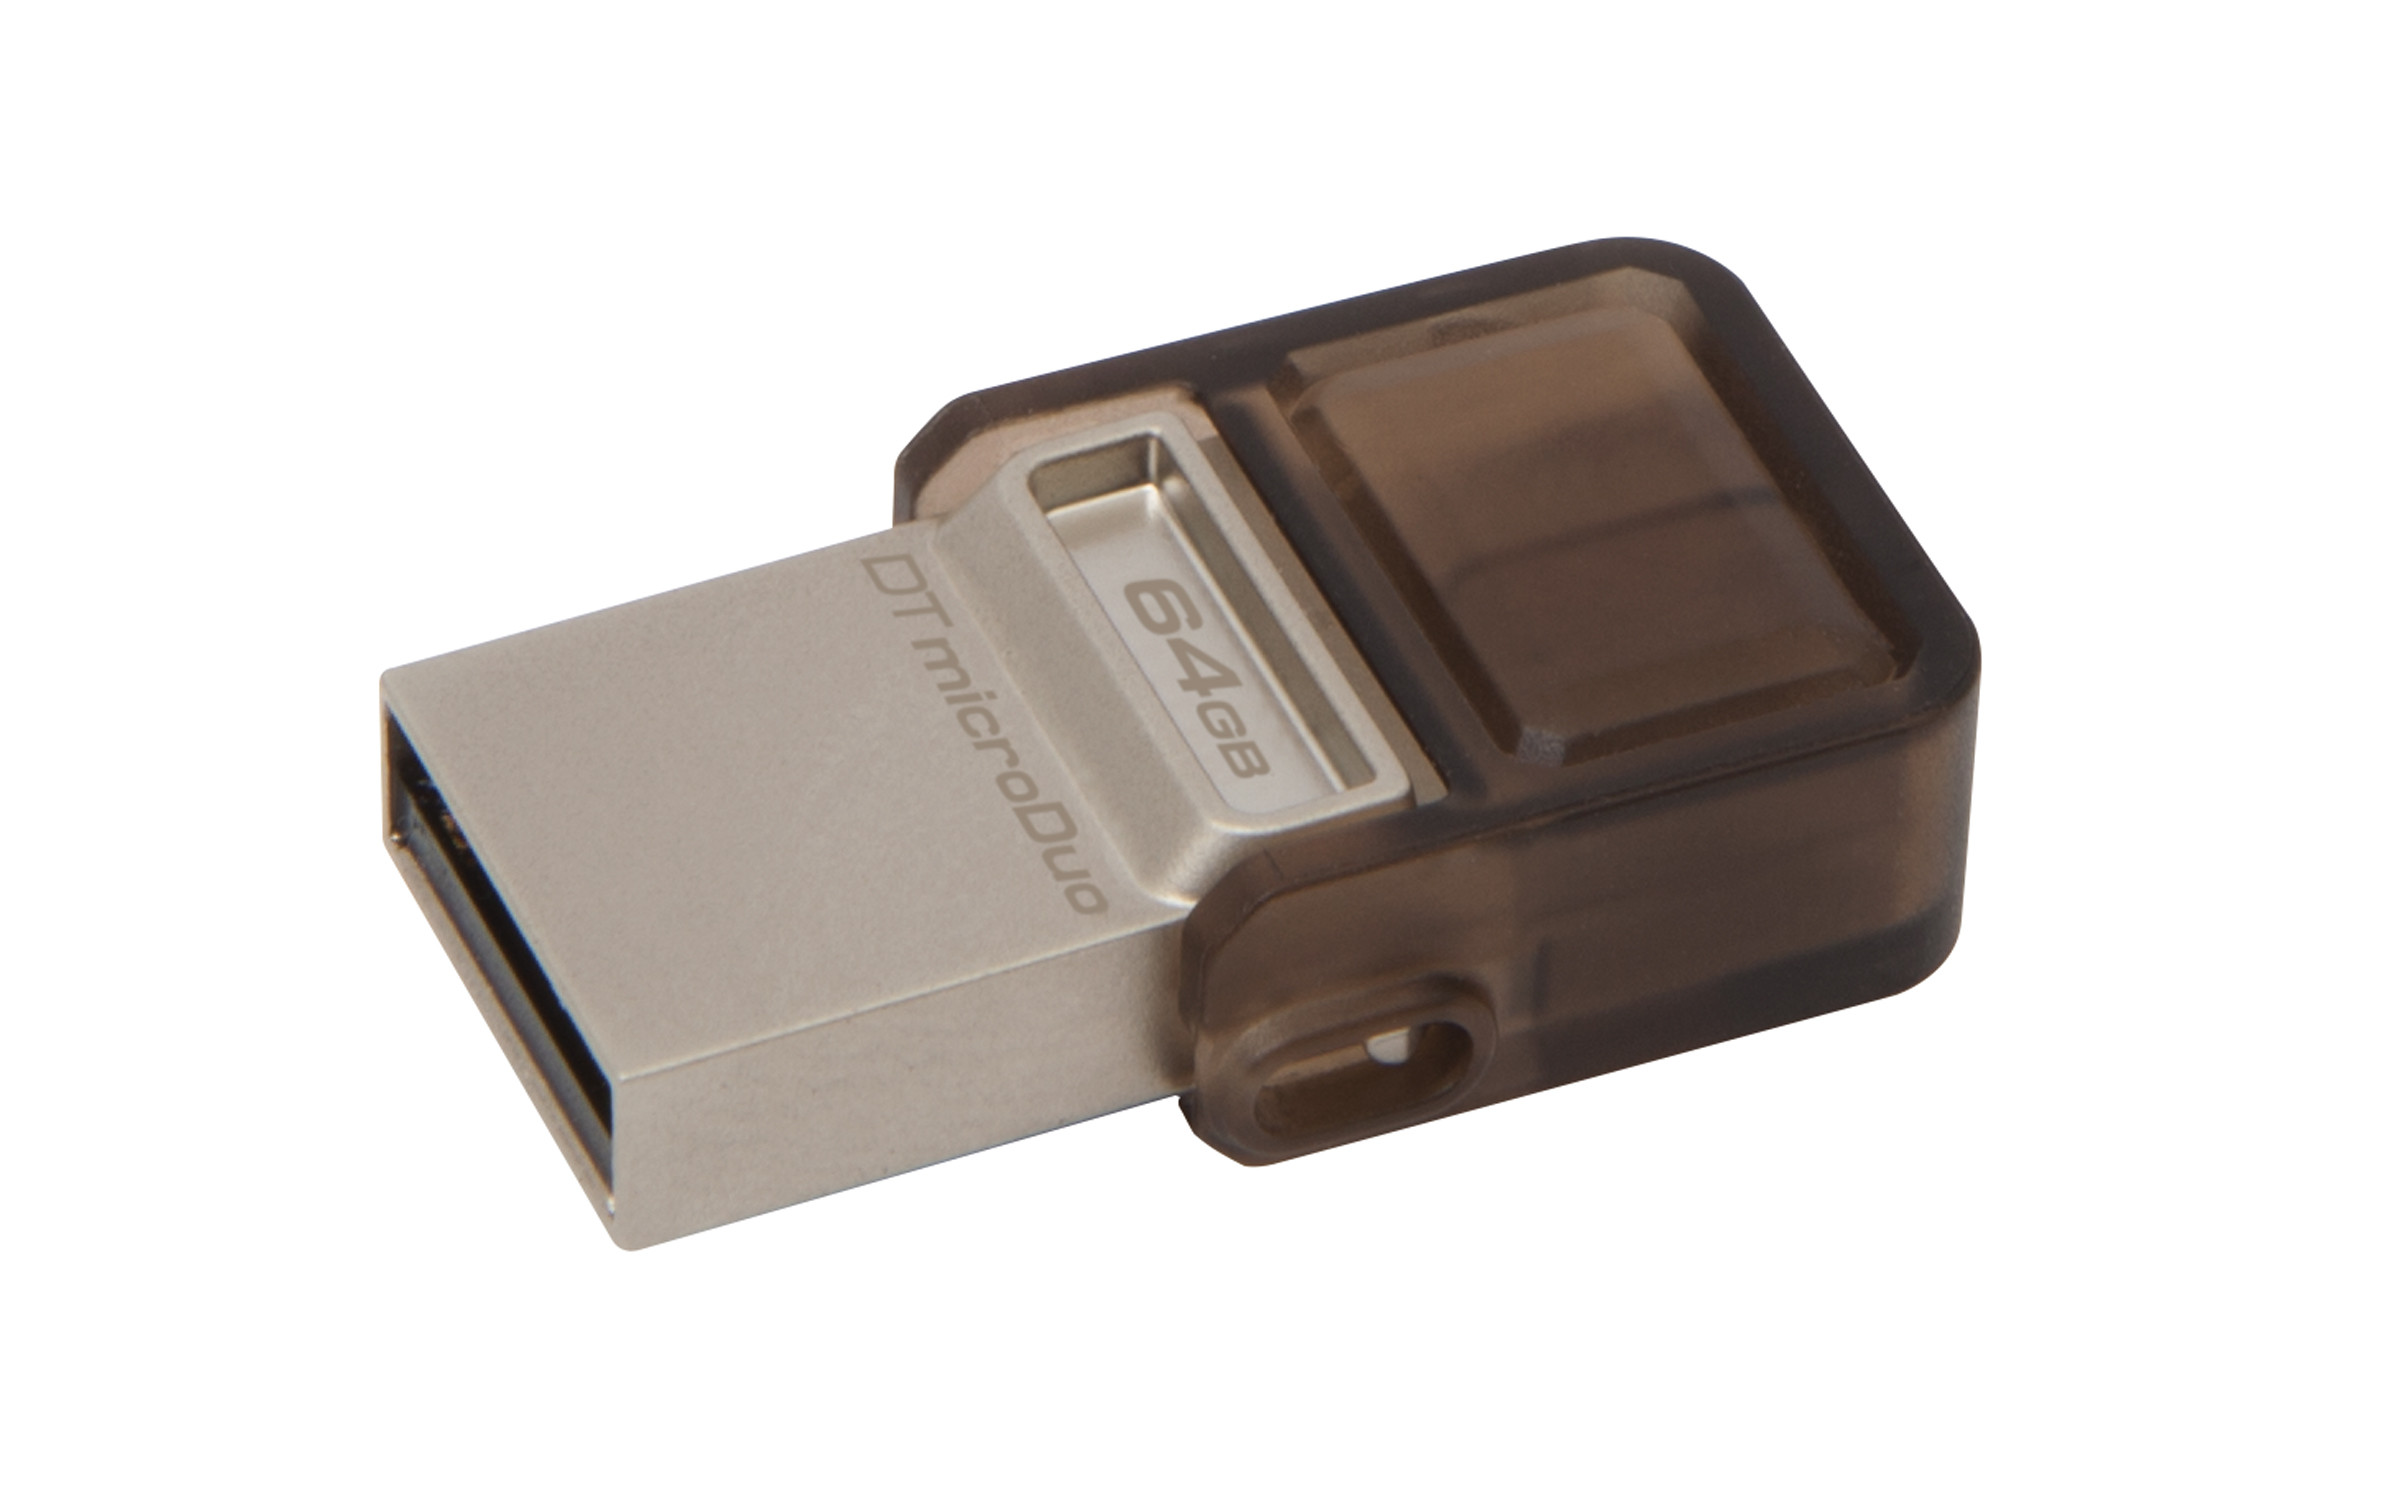 64GB Kingston DT MicroDuo USB 2.0. OTG